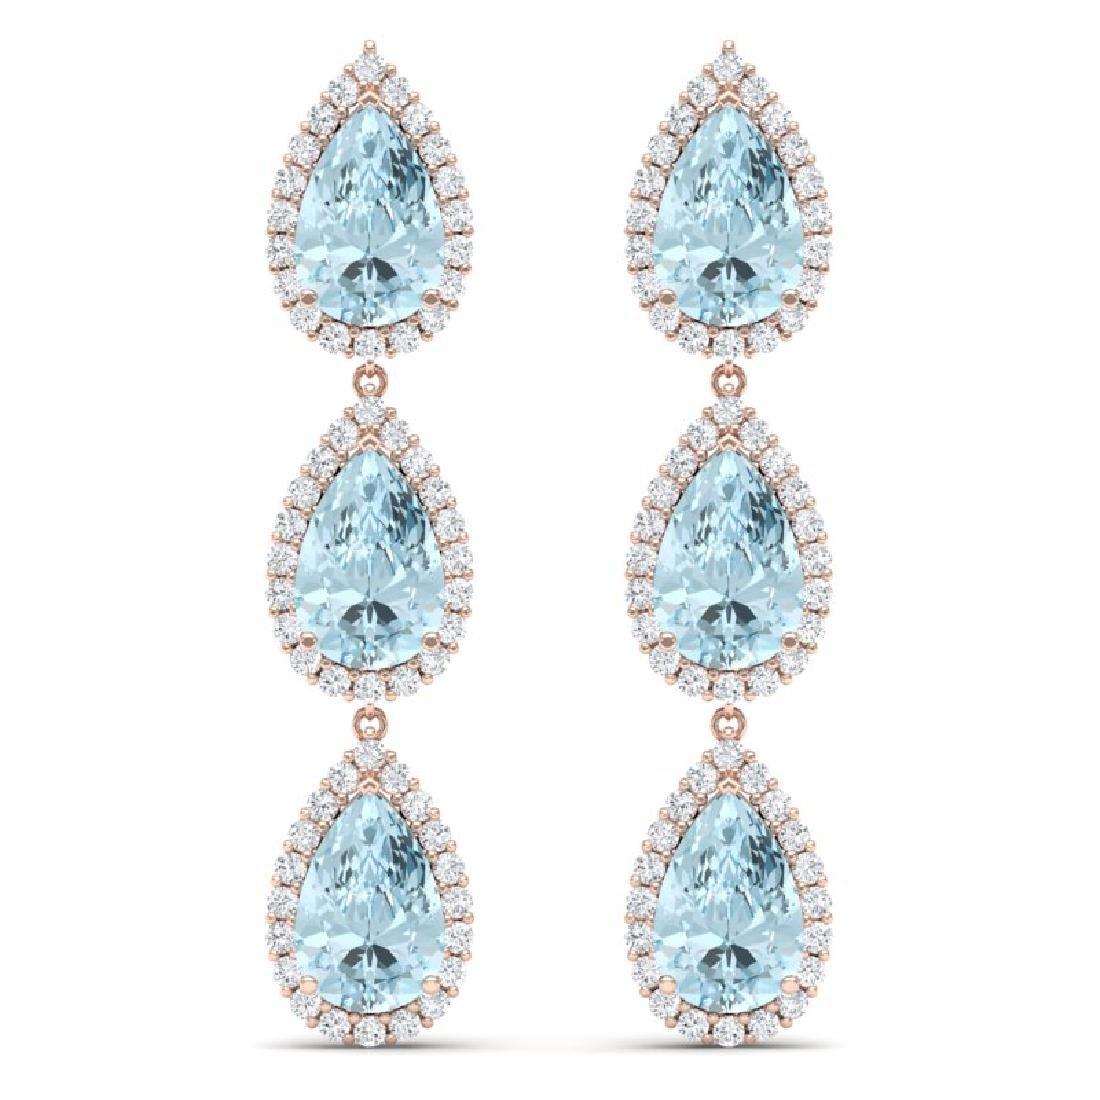 27.3 CTW Royalty Sky Topaz & VS Diamond Earrings 18K